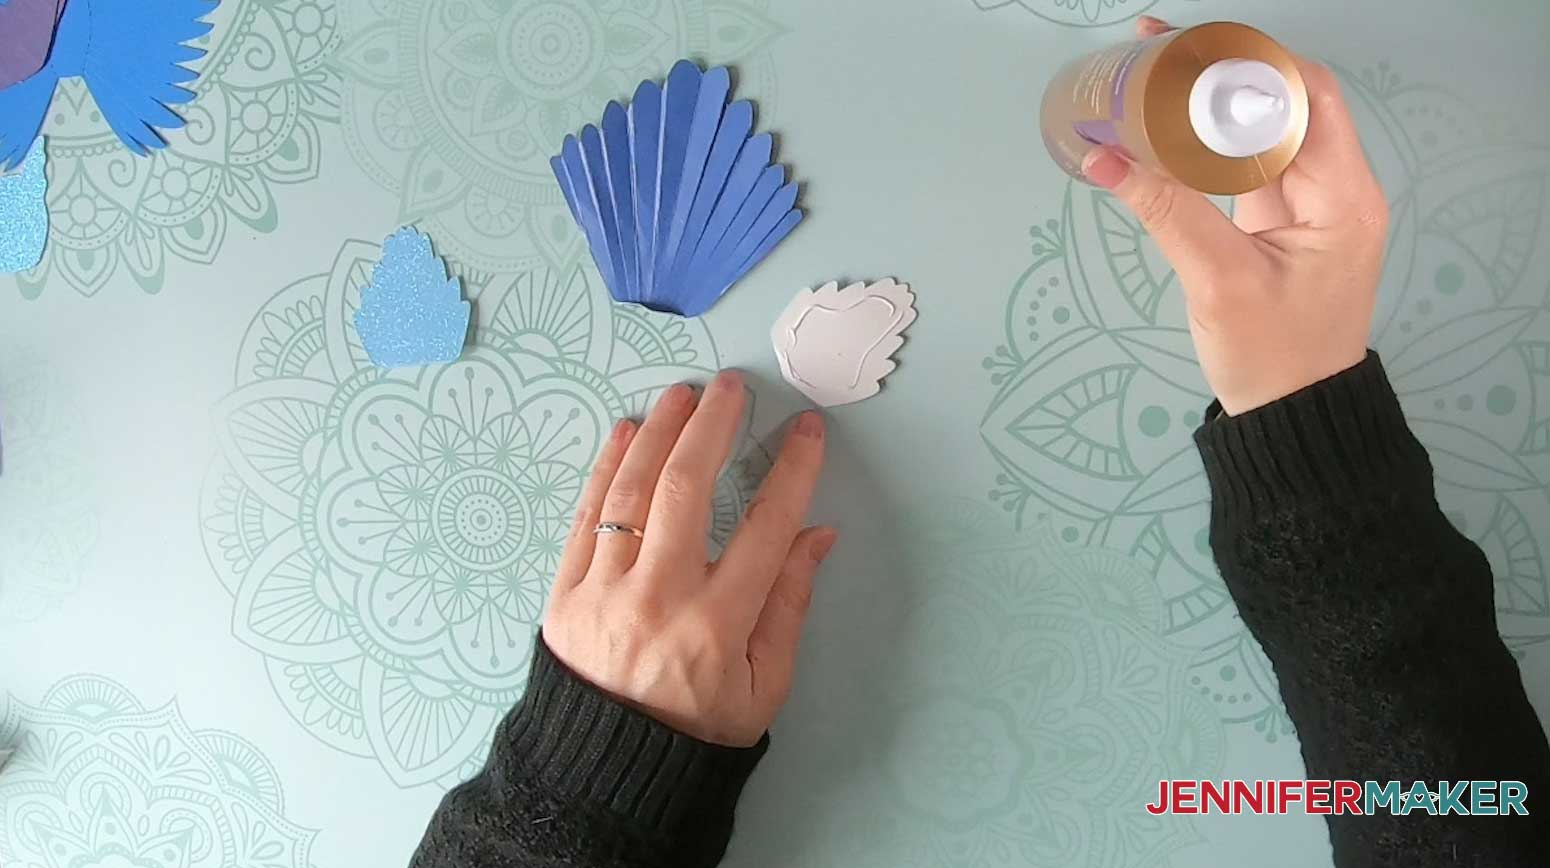 Glue the paper bird decorative pieces to the tail